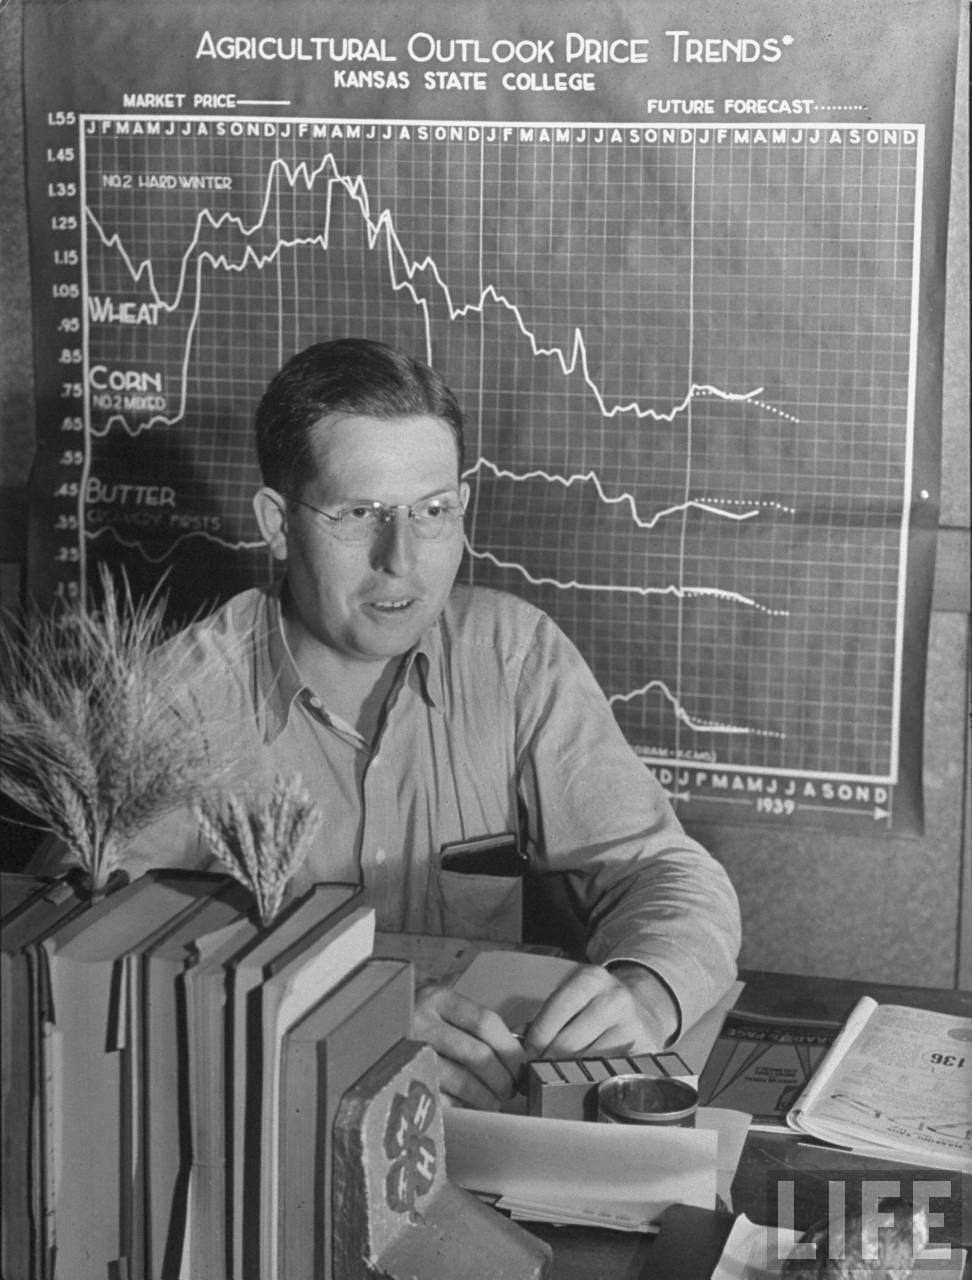 County agent Harold Harper at his desk in front of Kansas State College graph entitled Agricultural OUTLOOK PRICE TRENDS in his Harvey County office.